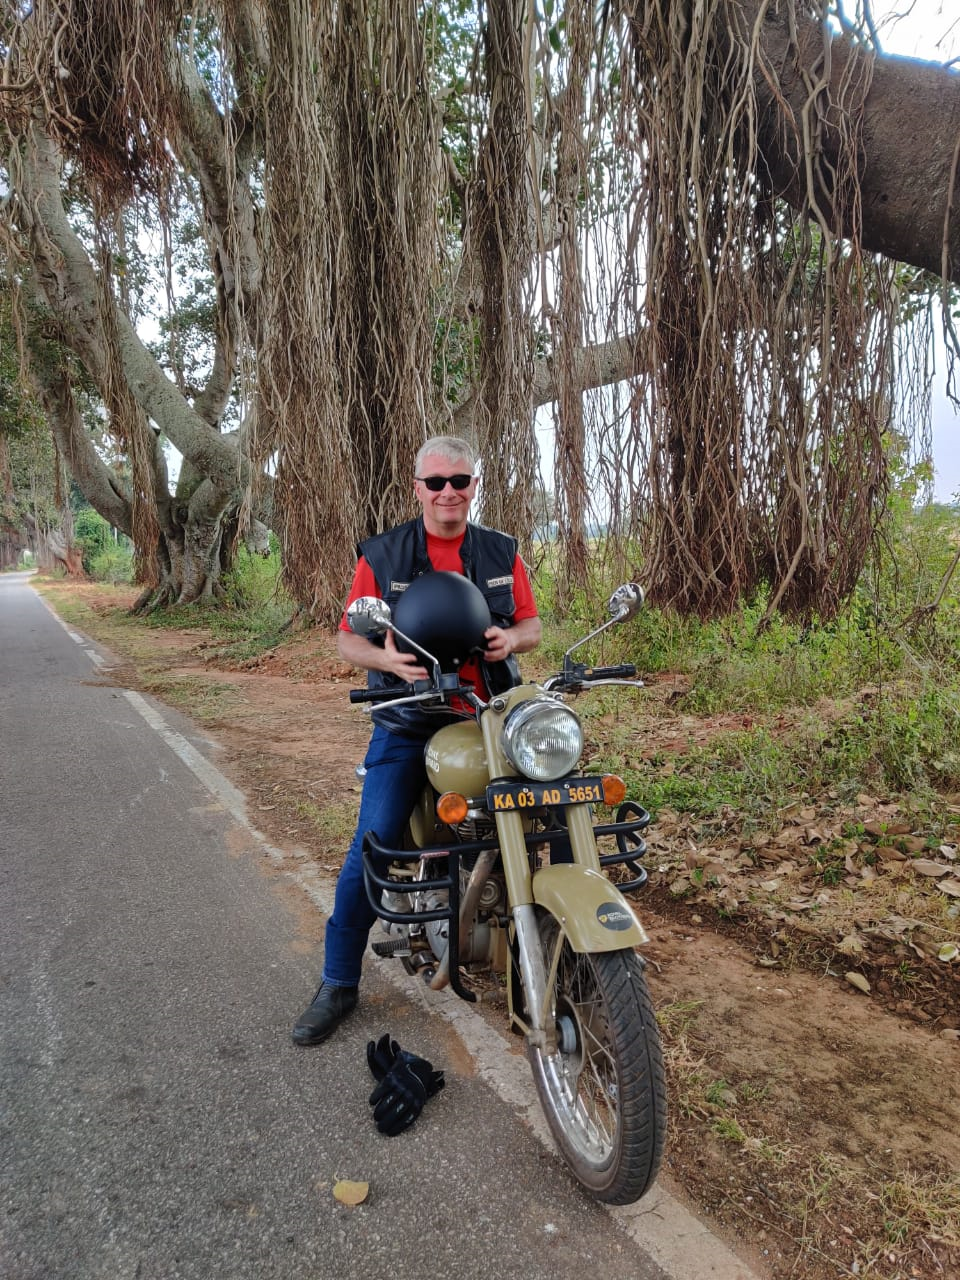 Didier Bassleer during a motorbike ride in India